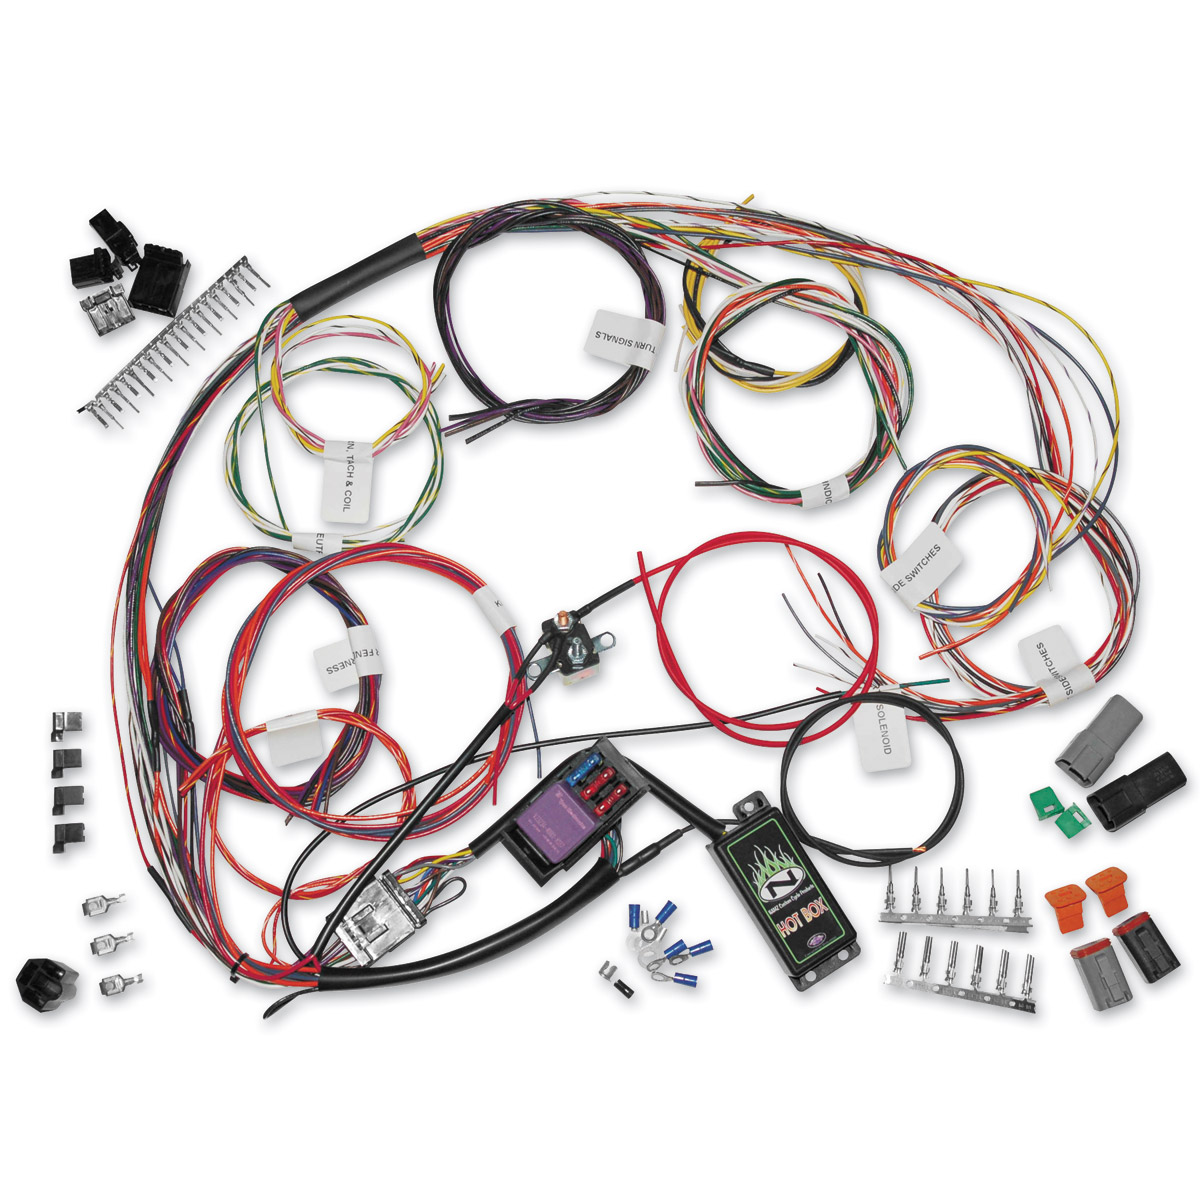 745 072_A namz custom cycle complete bike wiring harness kit 745 072 j&p custom wiring harness at gsmx.co